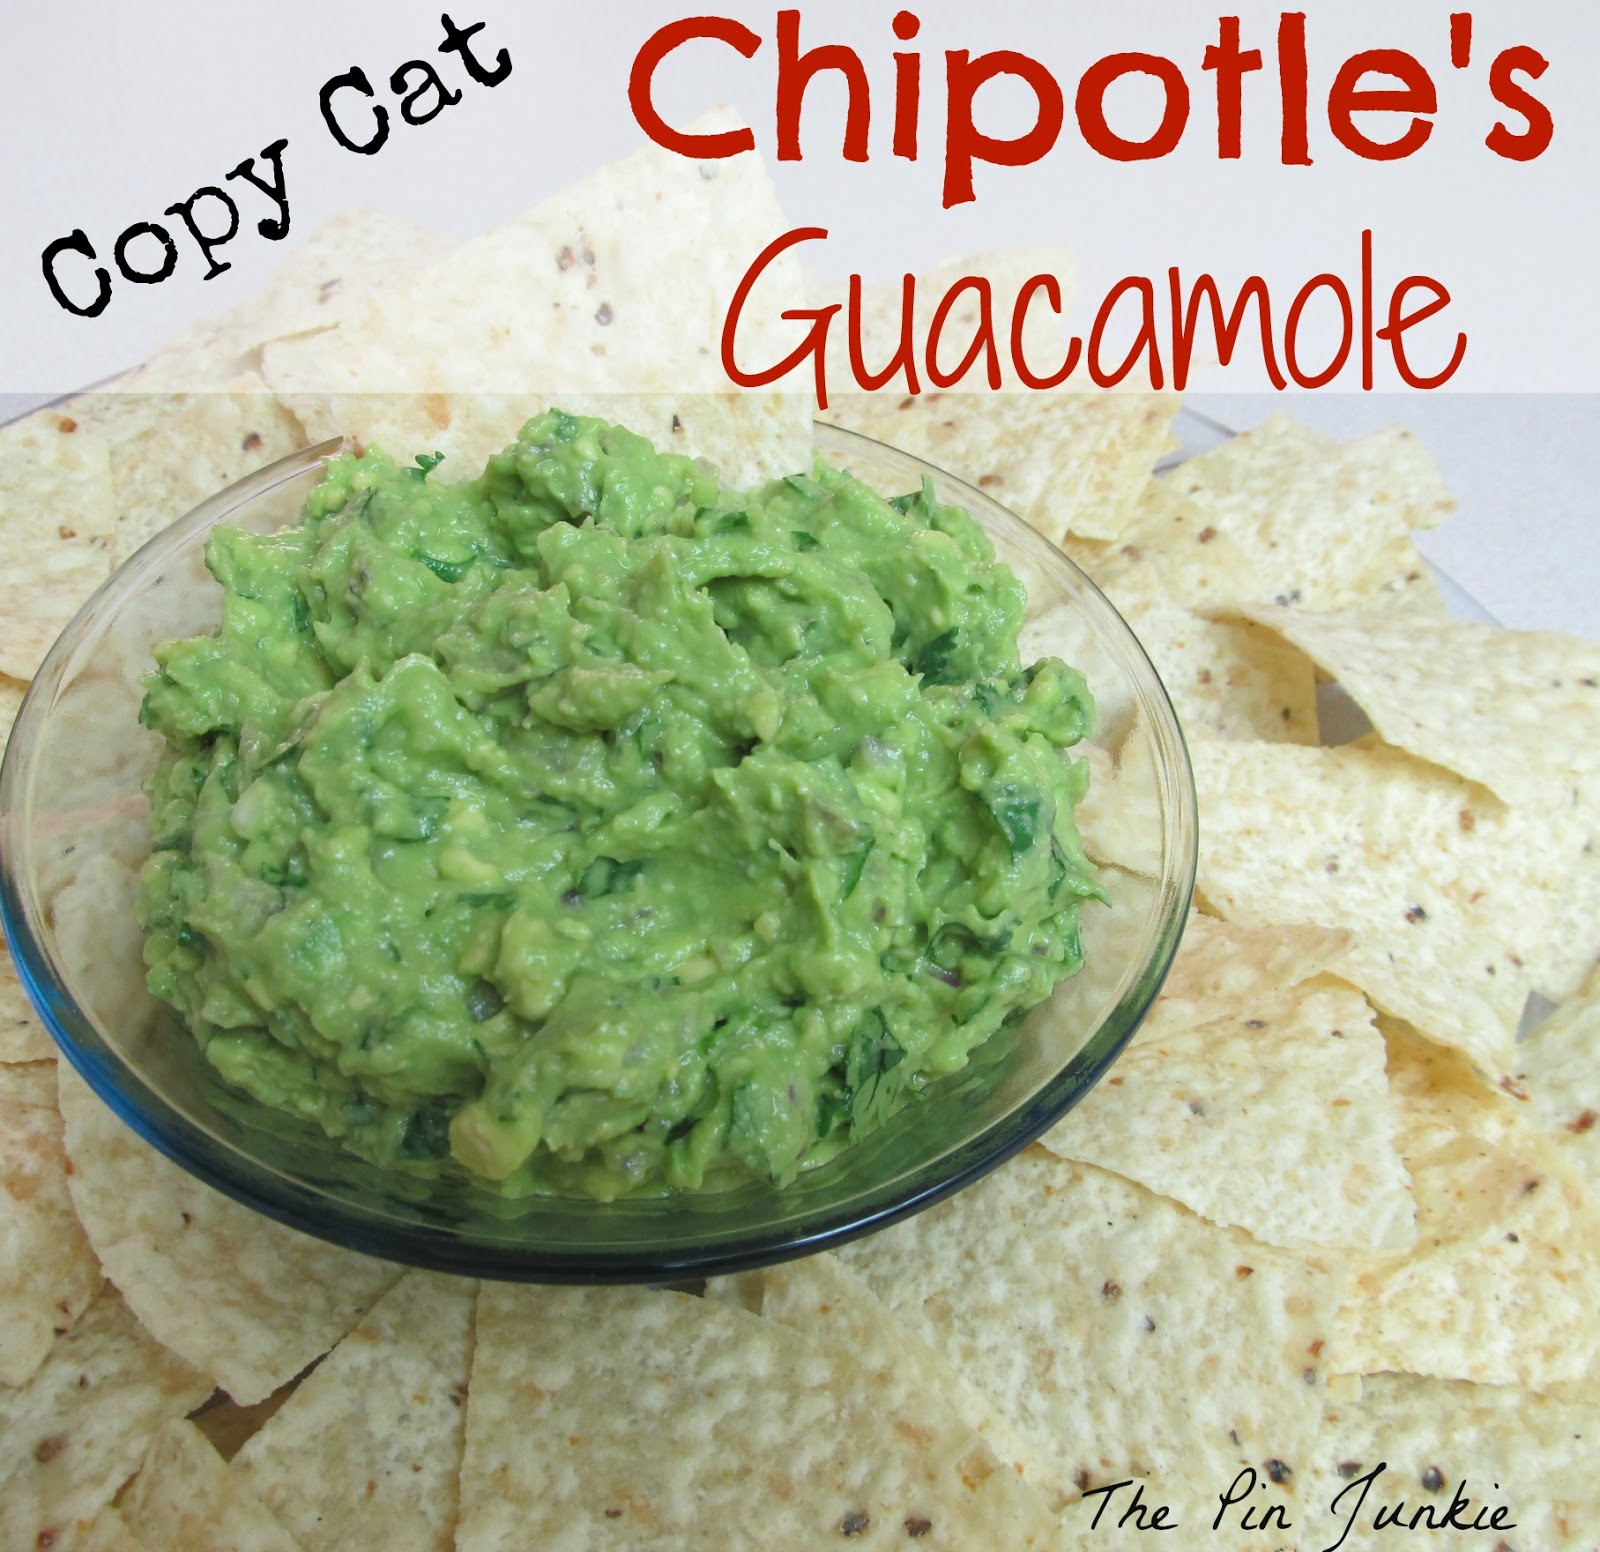 chipotle's guacamole recipe